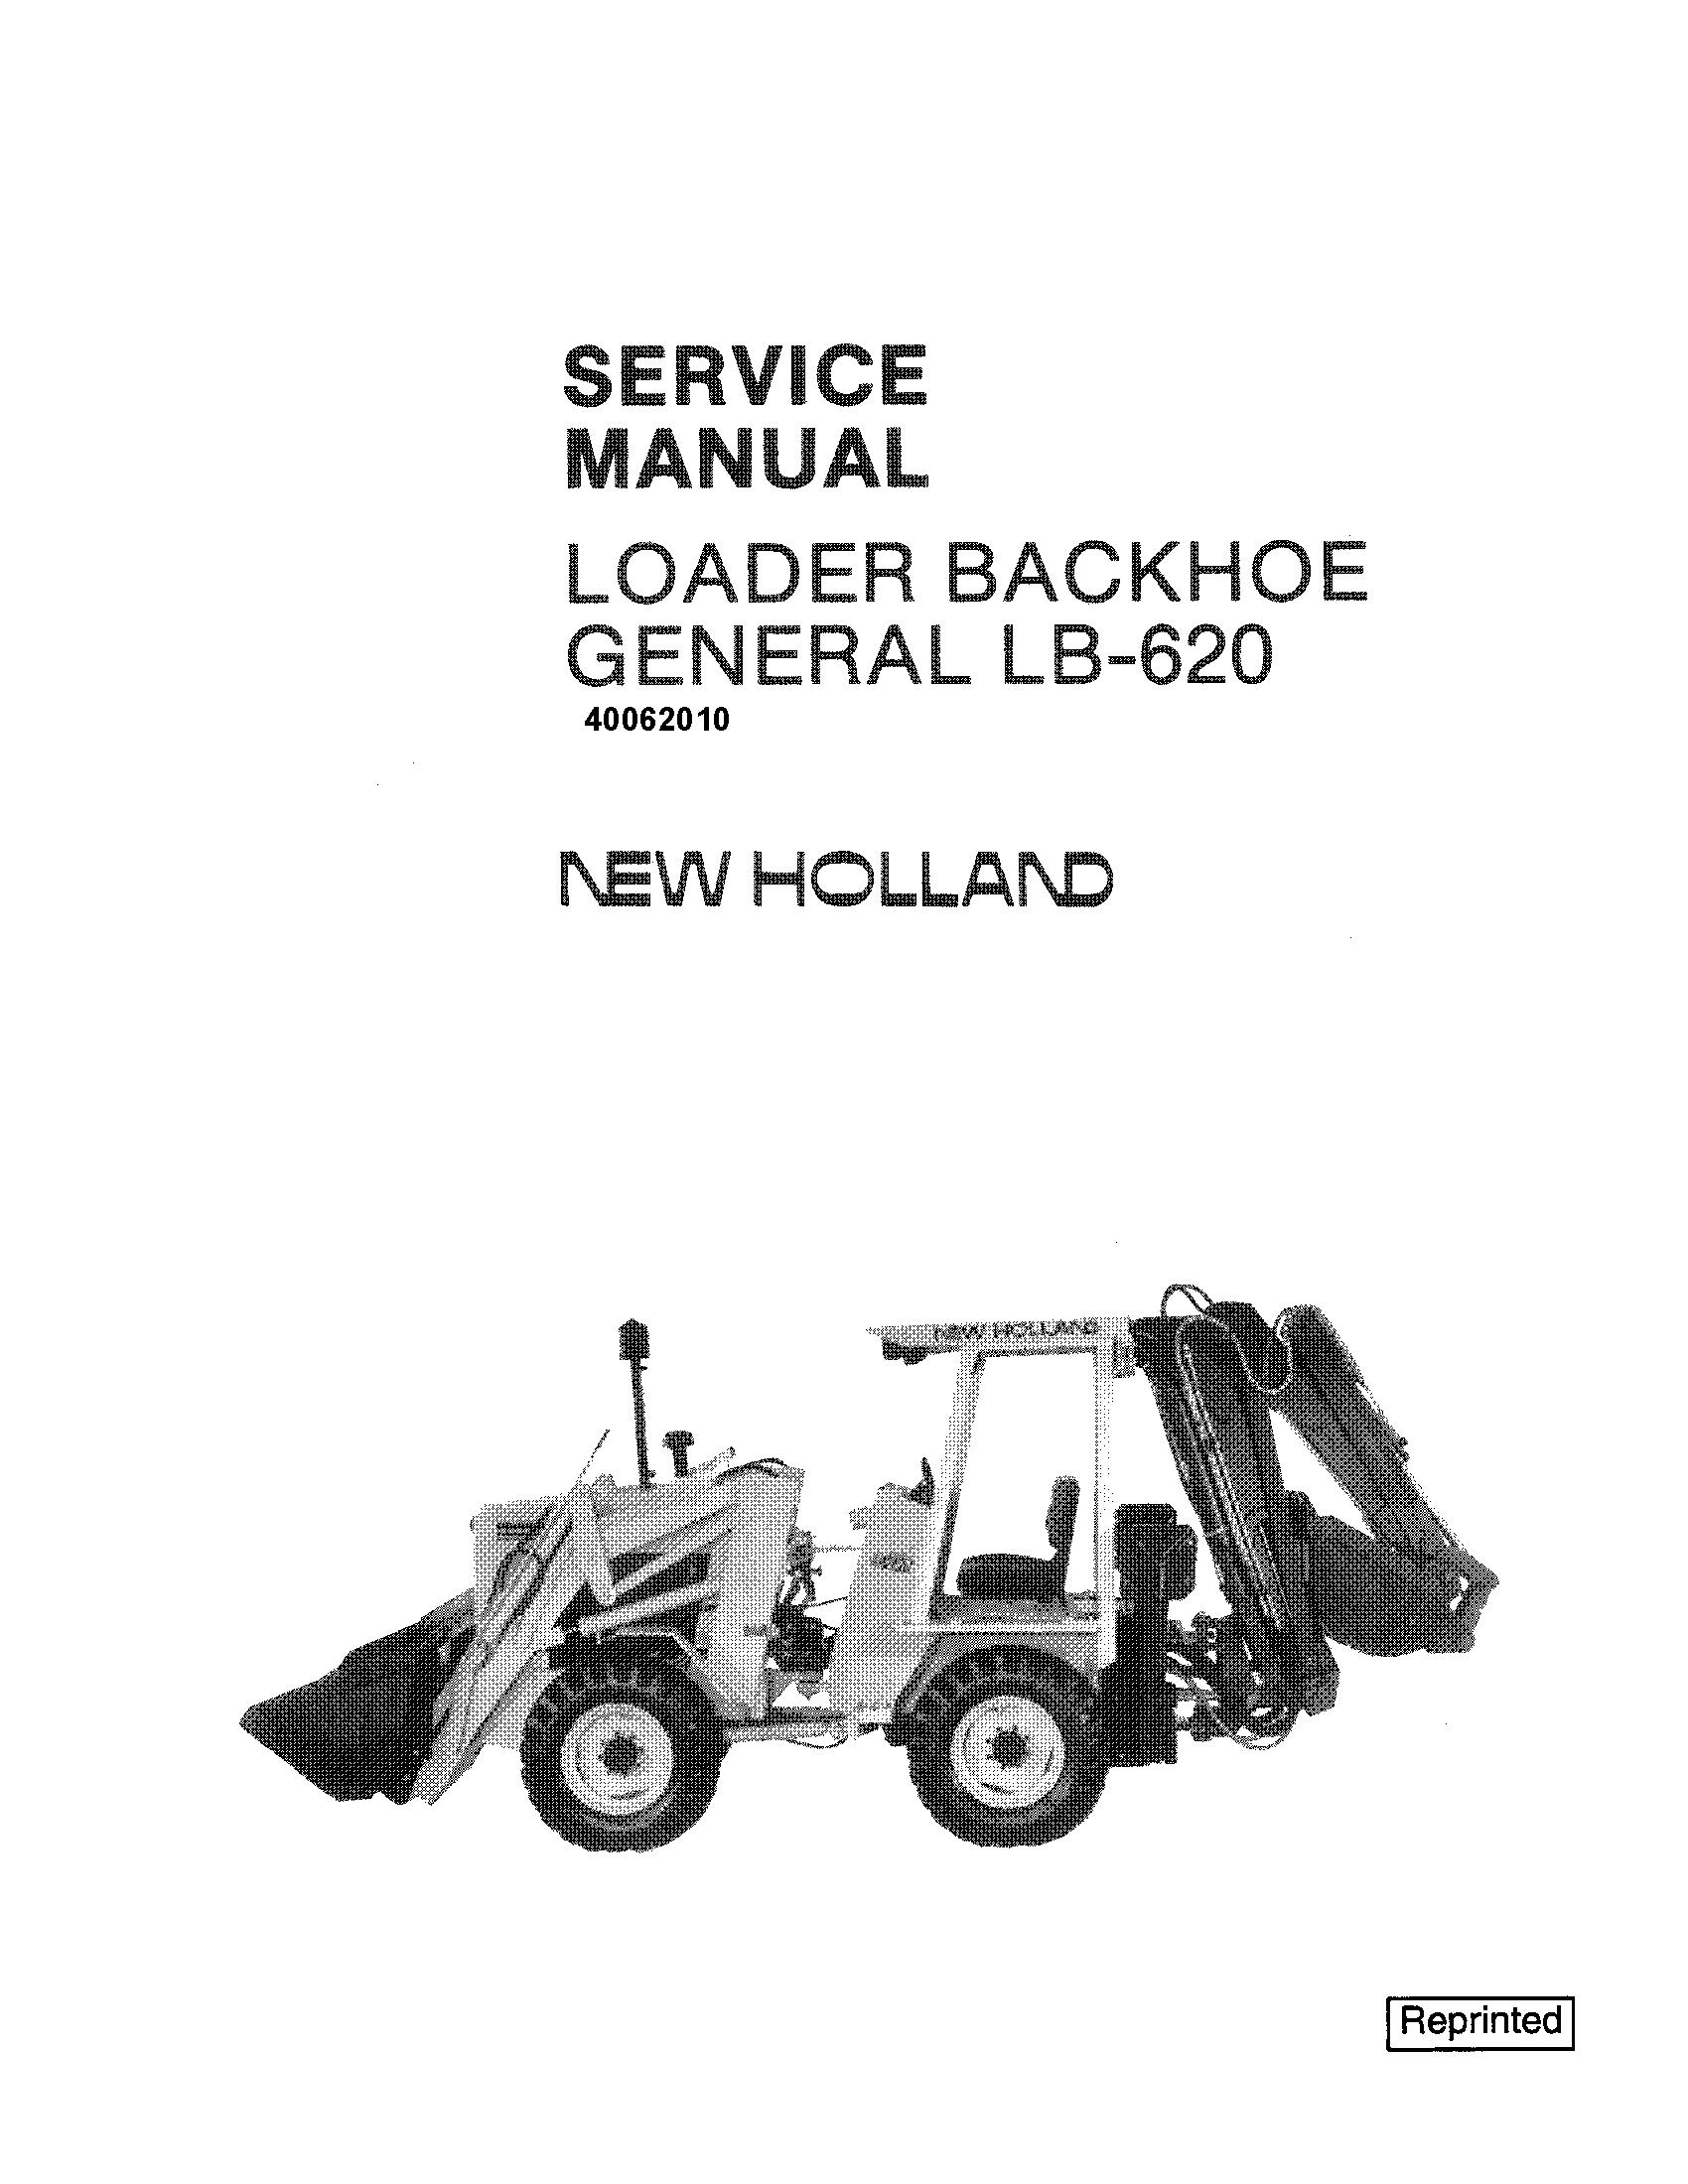 New Holland LB620 Backhoe Loader Service Manual - 19345